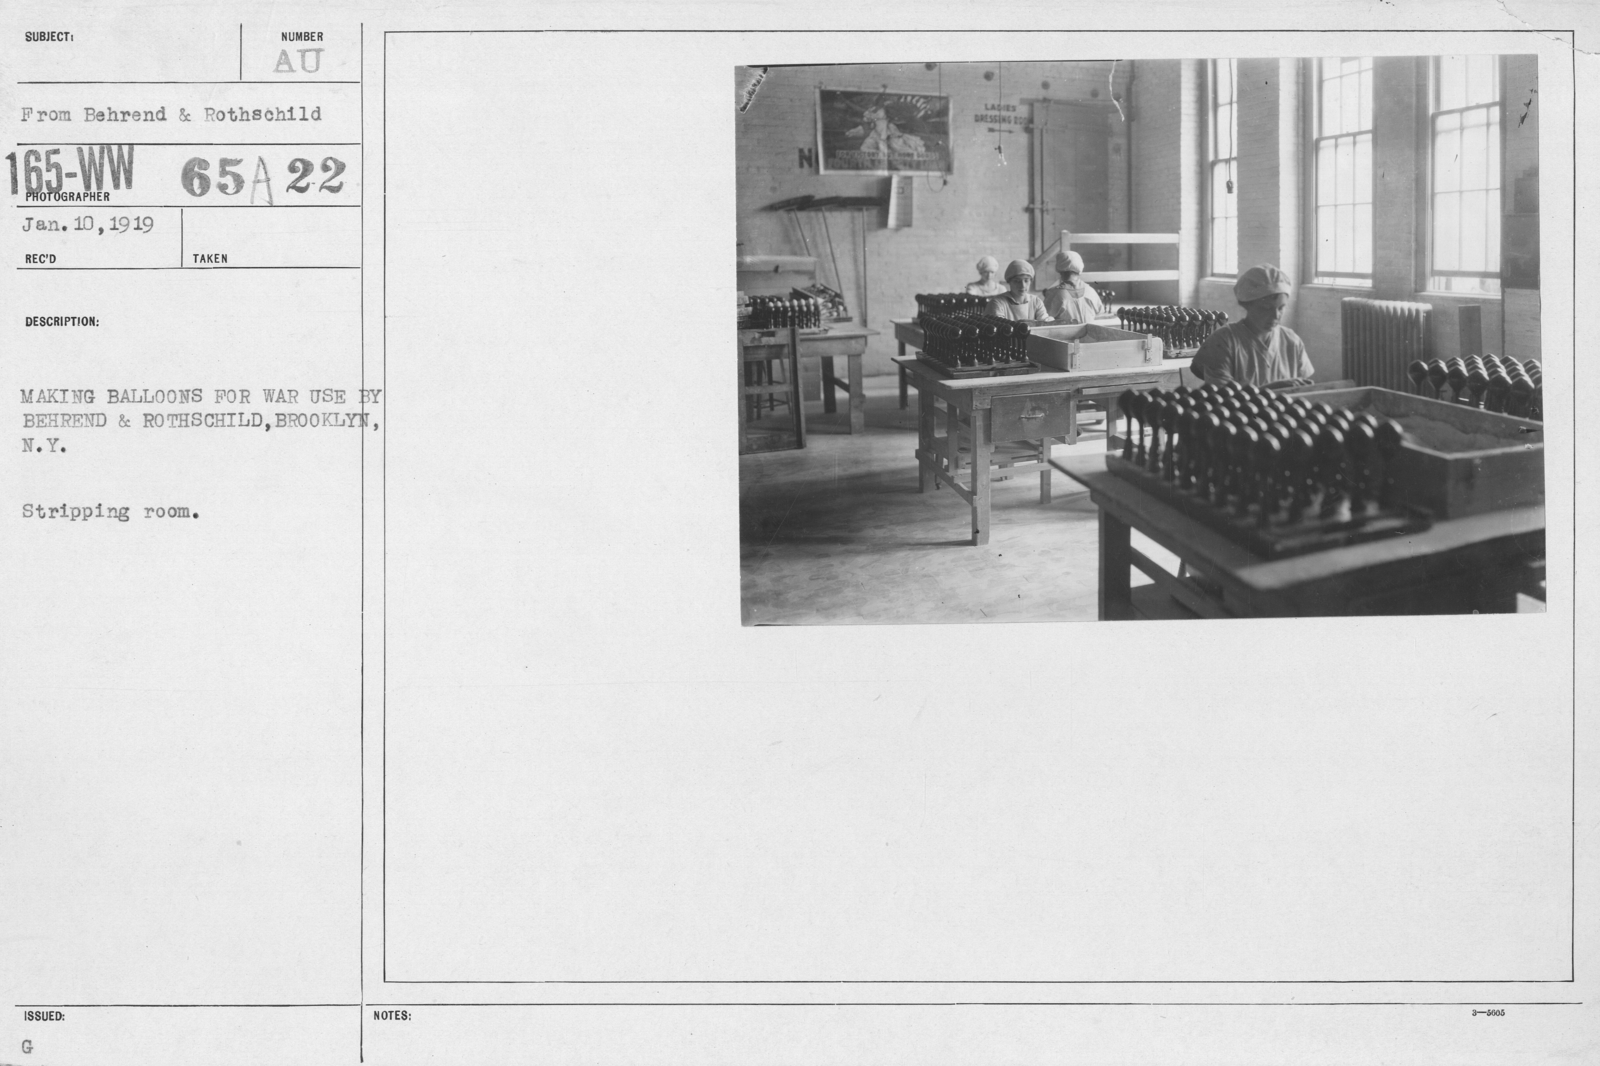 Balloons - Manufacturing - General - Making balloons for war use by Behrend & Rothschild, Brooklyn, N.Y. Stripping room